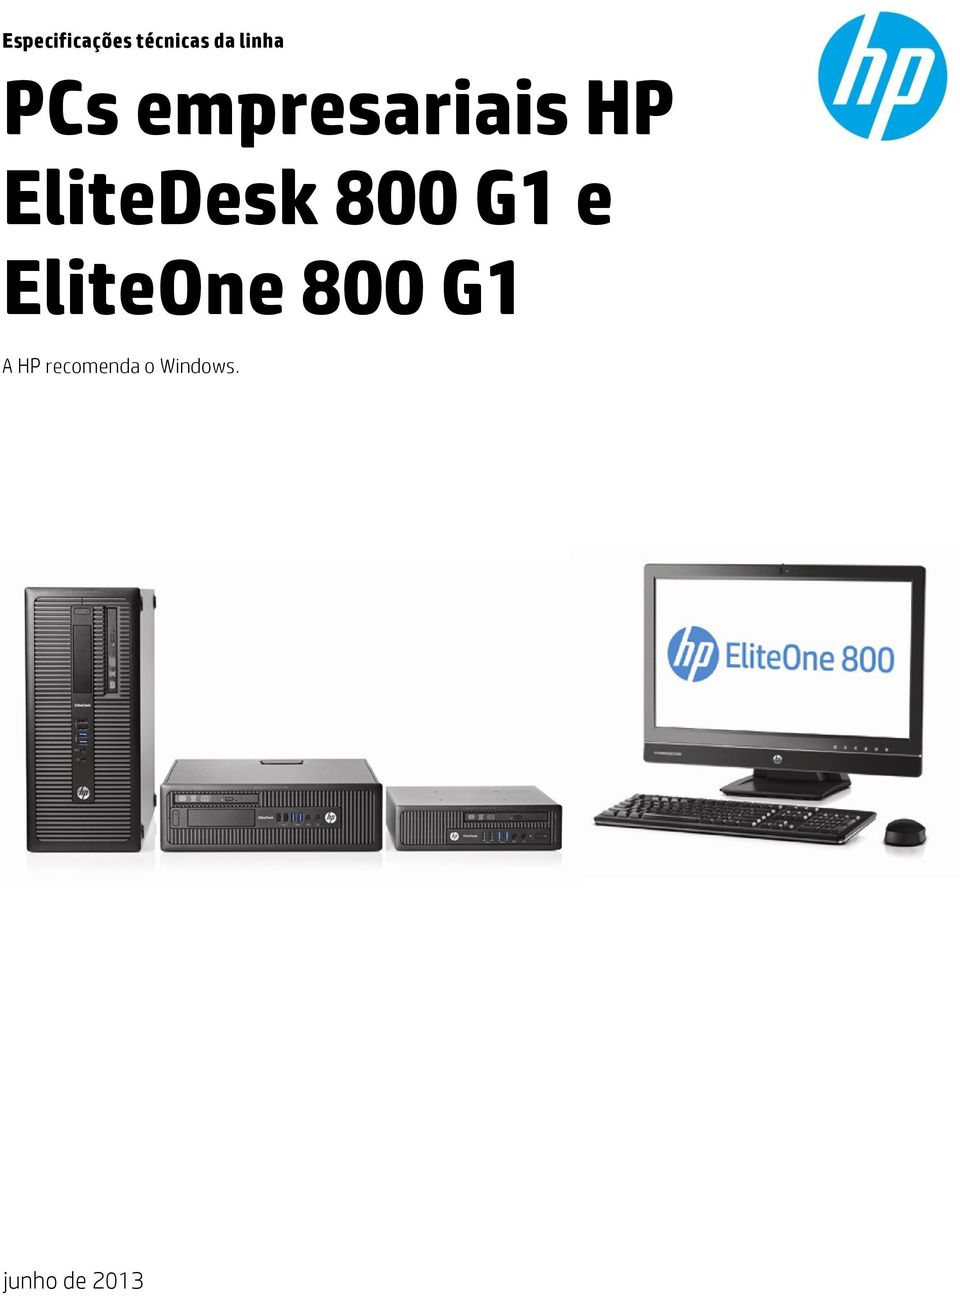 HP EliteDesk 800 G1 e